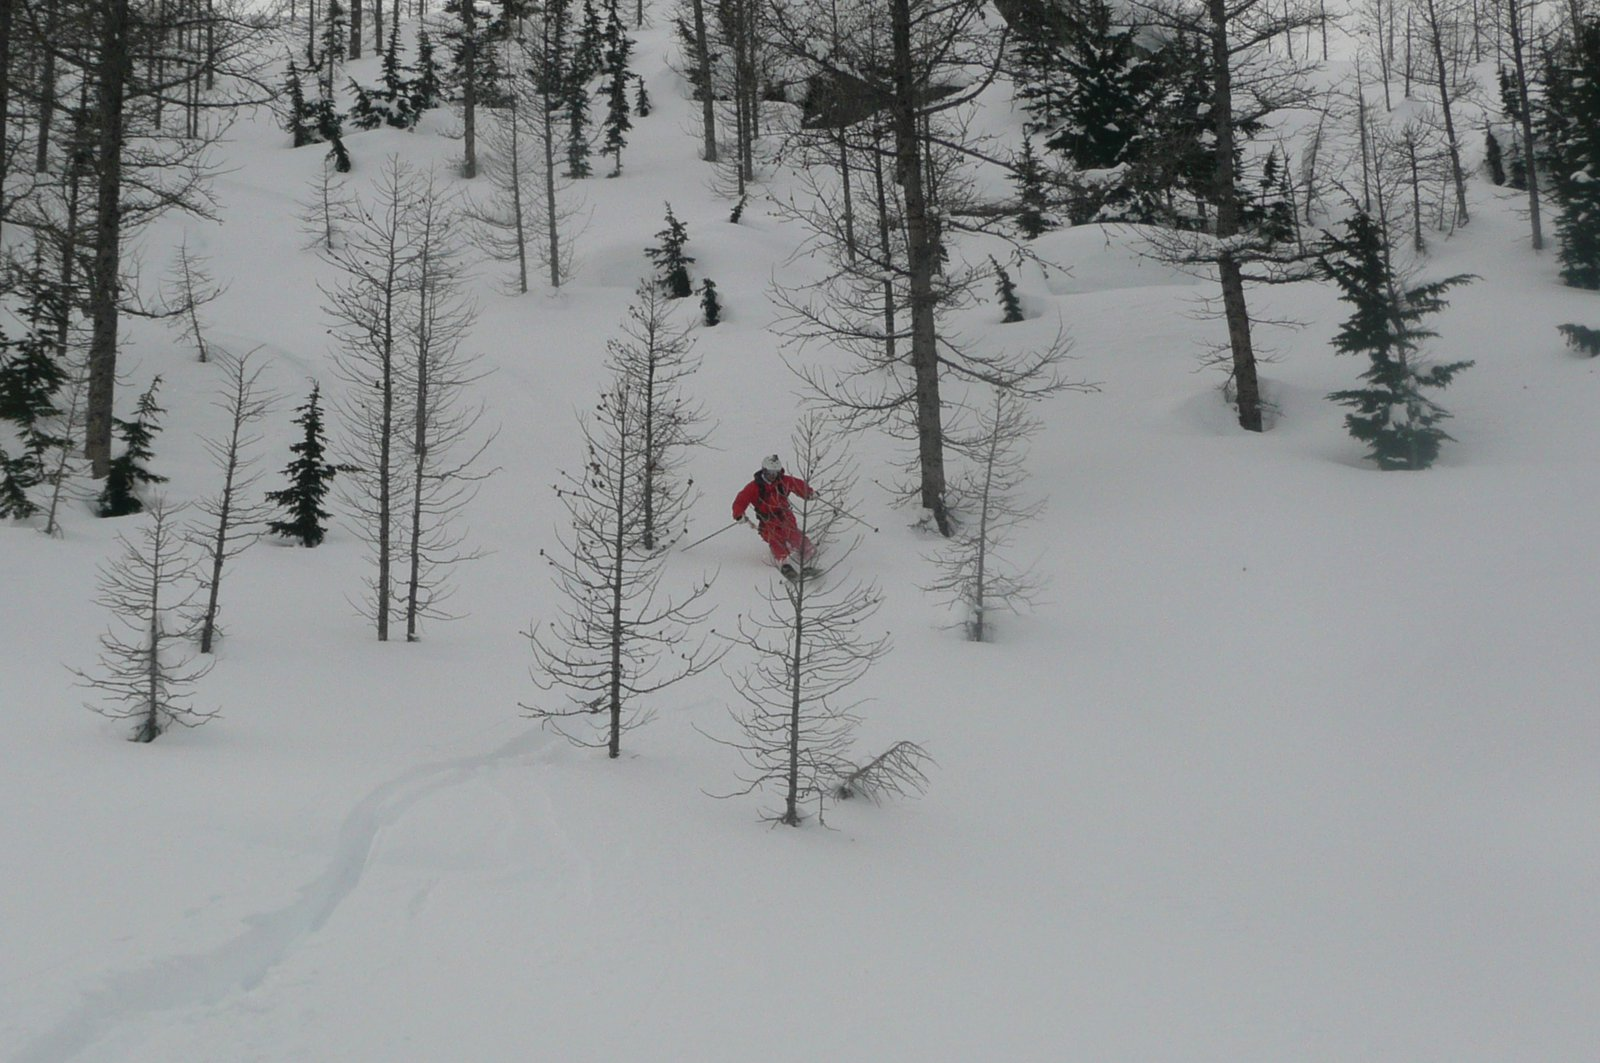 Some pow in the trees